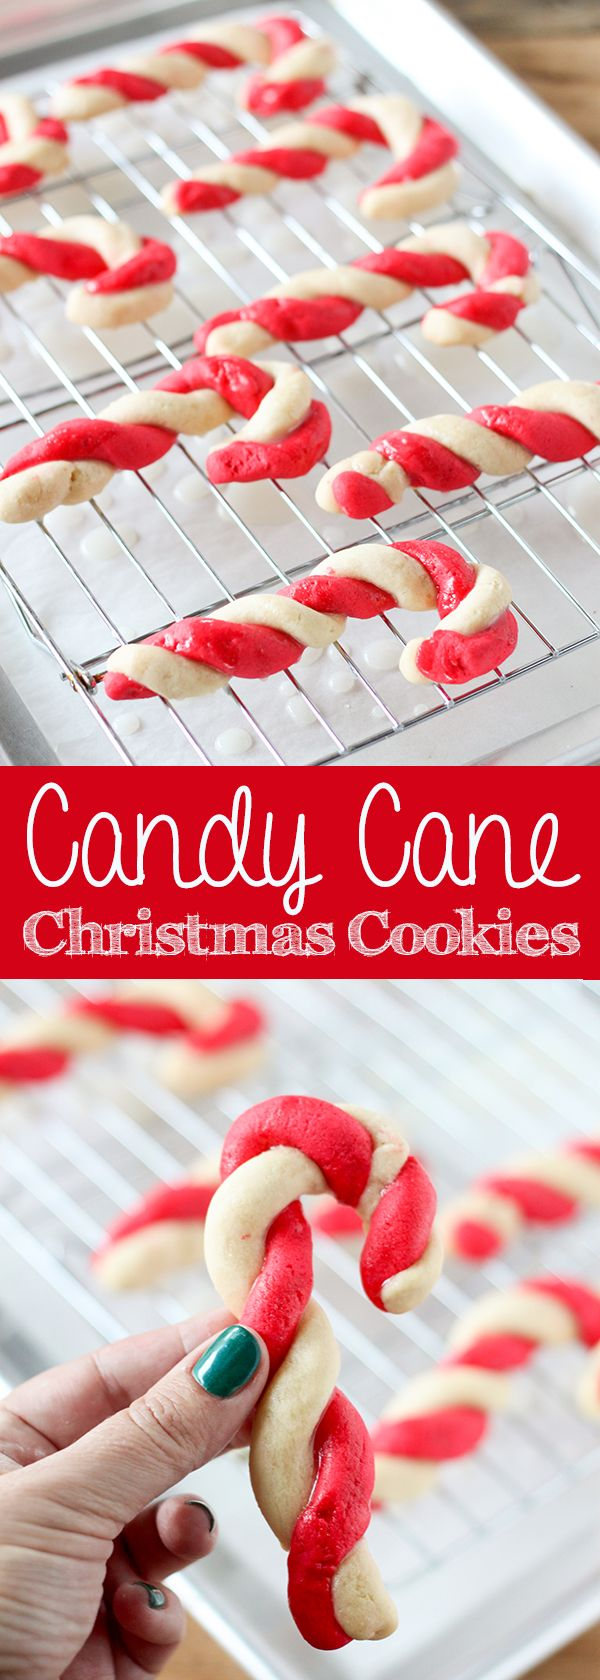 Peppermint Candy Cane Christmas Cookies - so super fun!